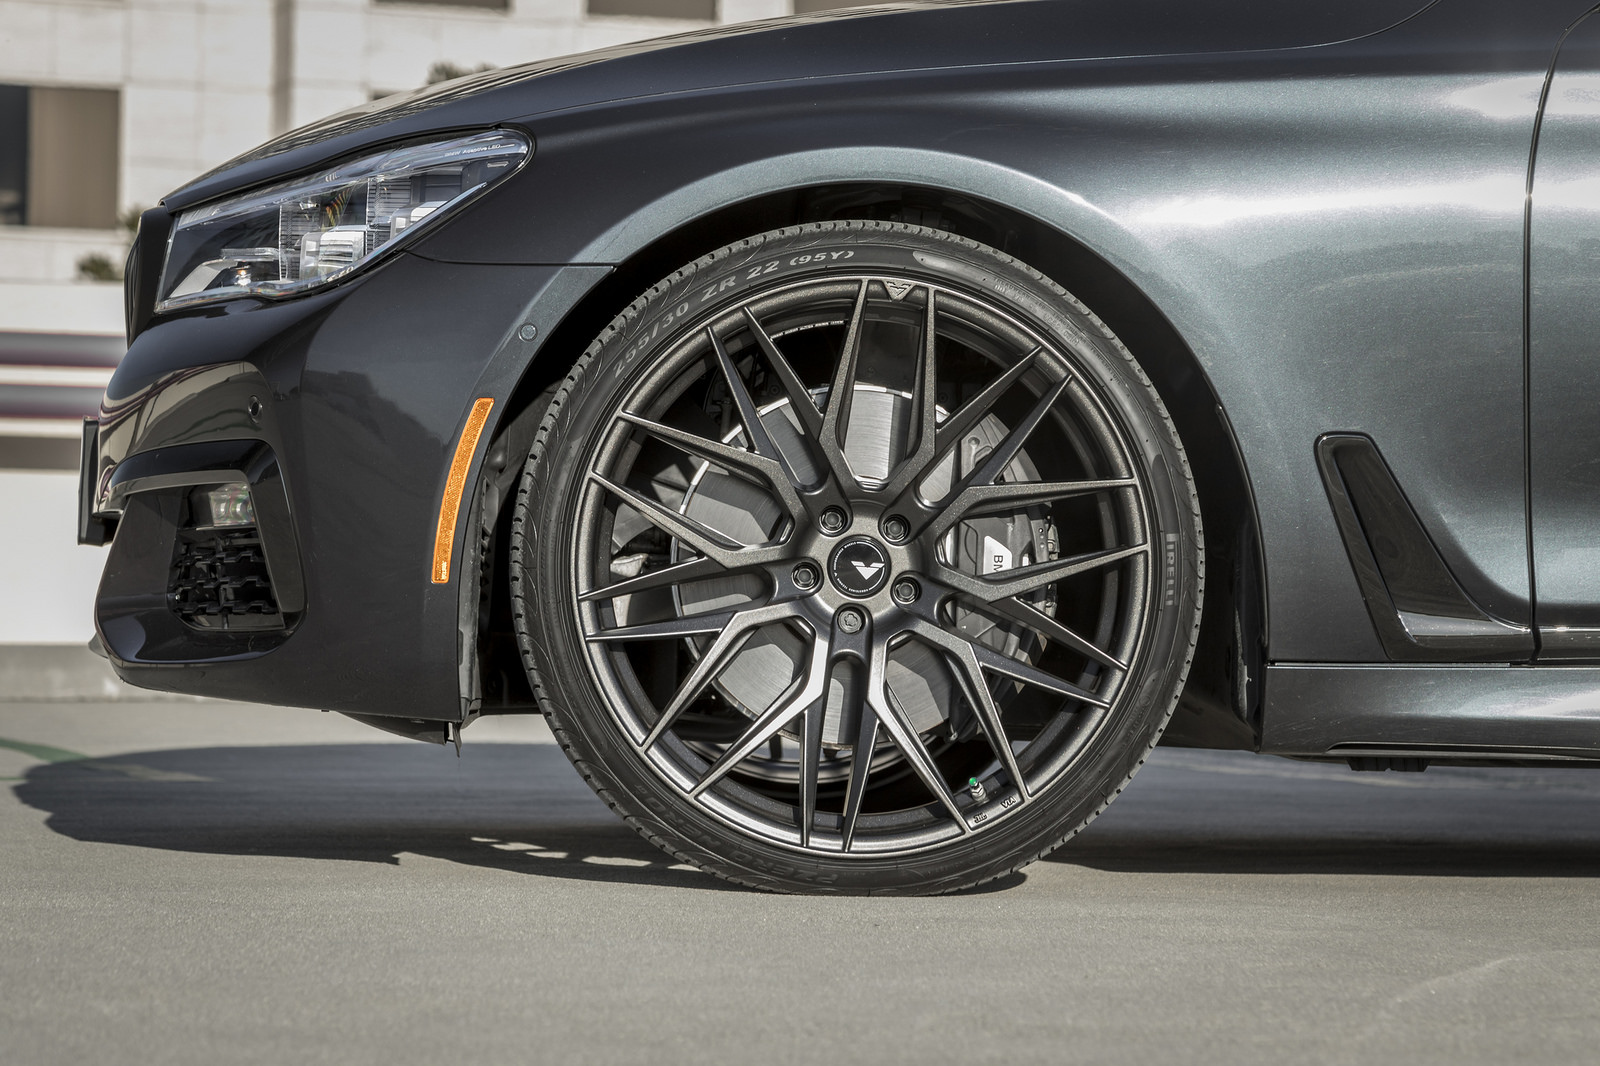 BMW 7-Series Wrapped in V-FF 107 Wheels (14)